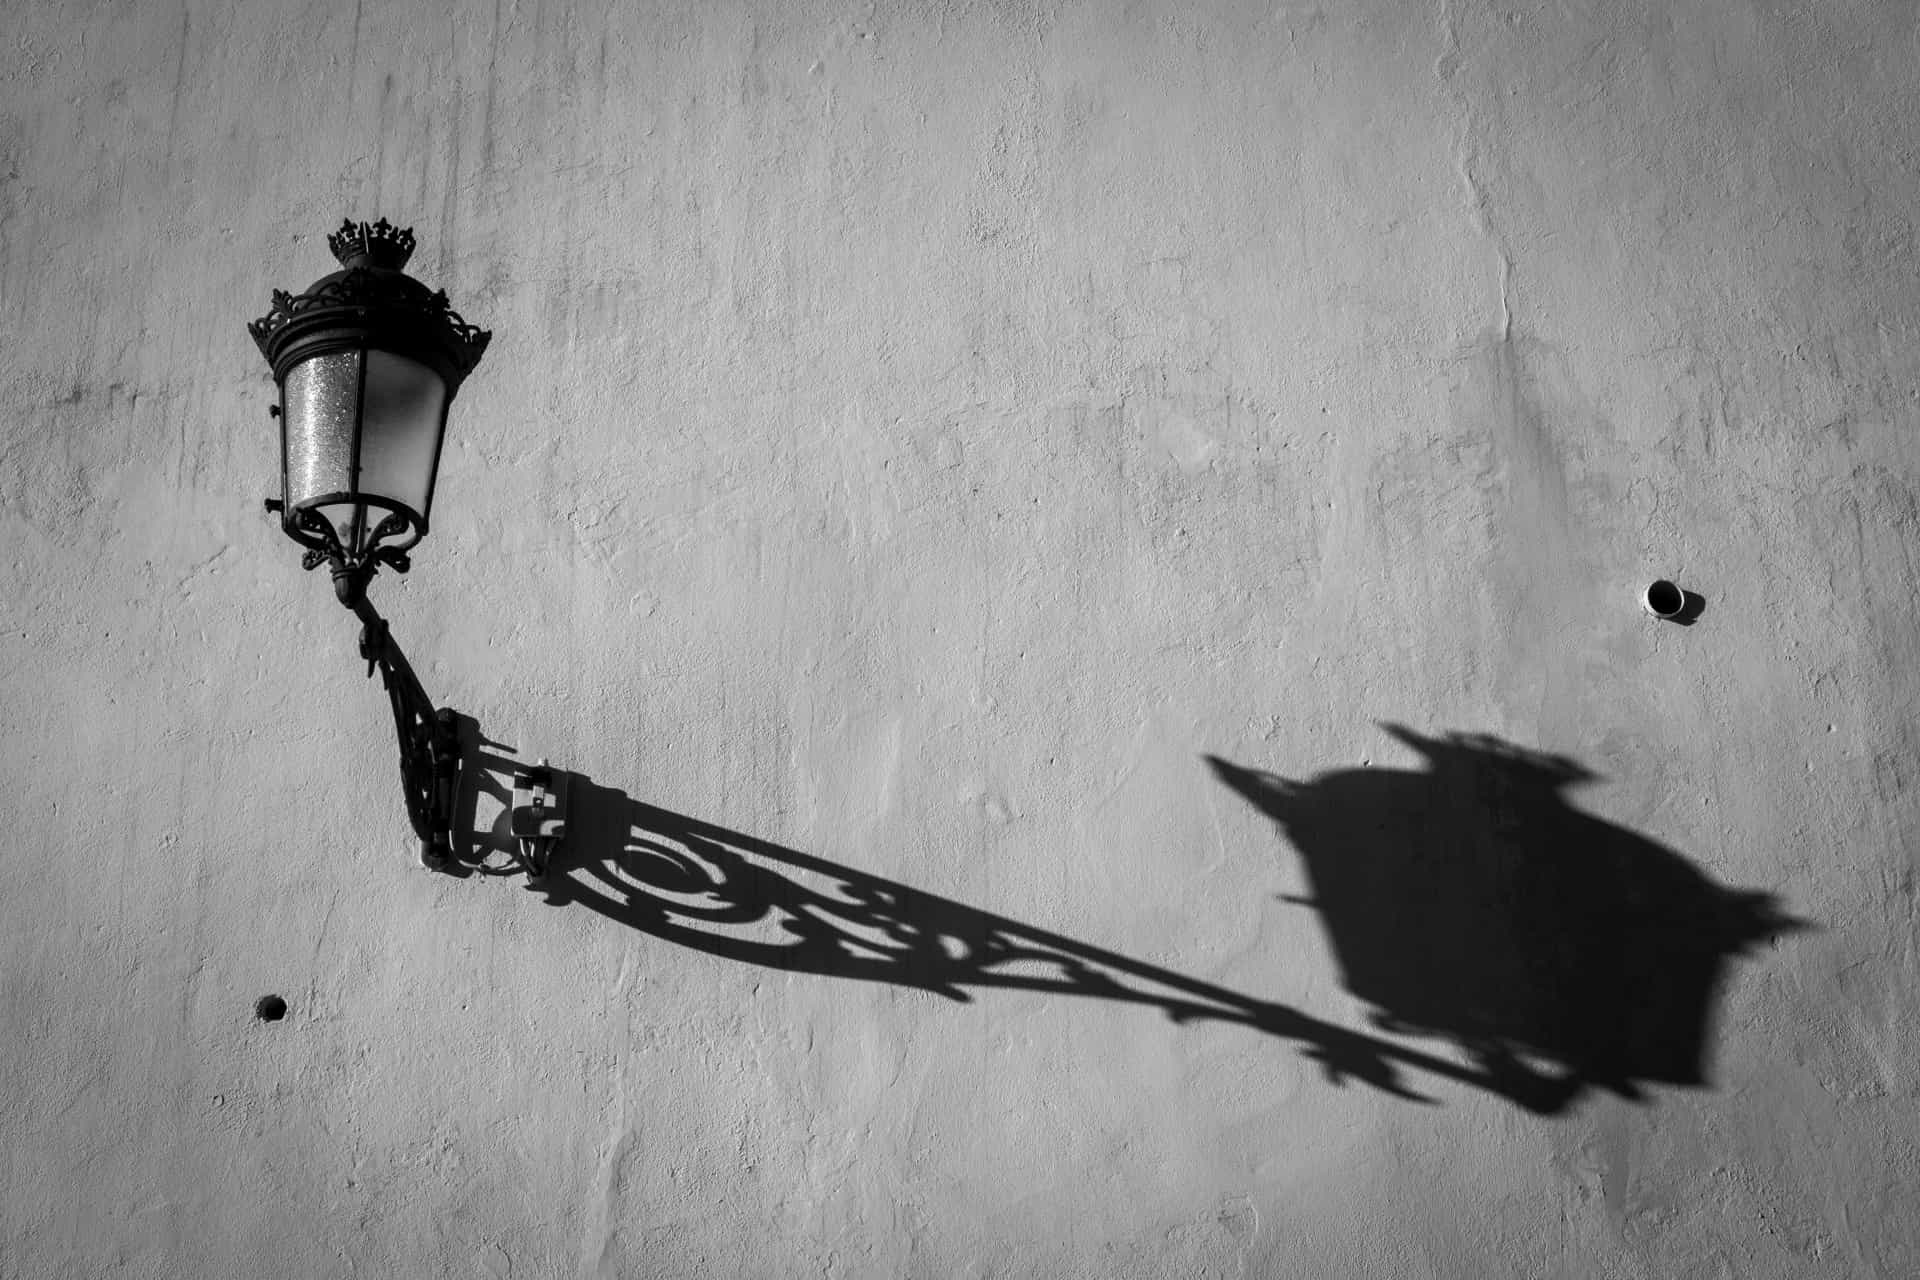 Light matters: spectacular shadows in images